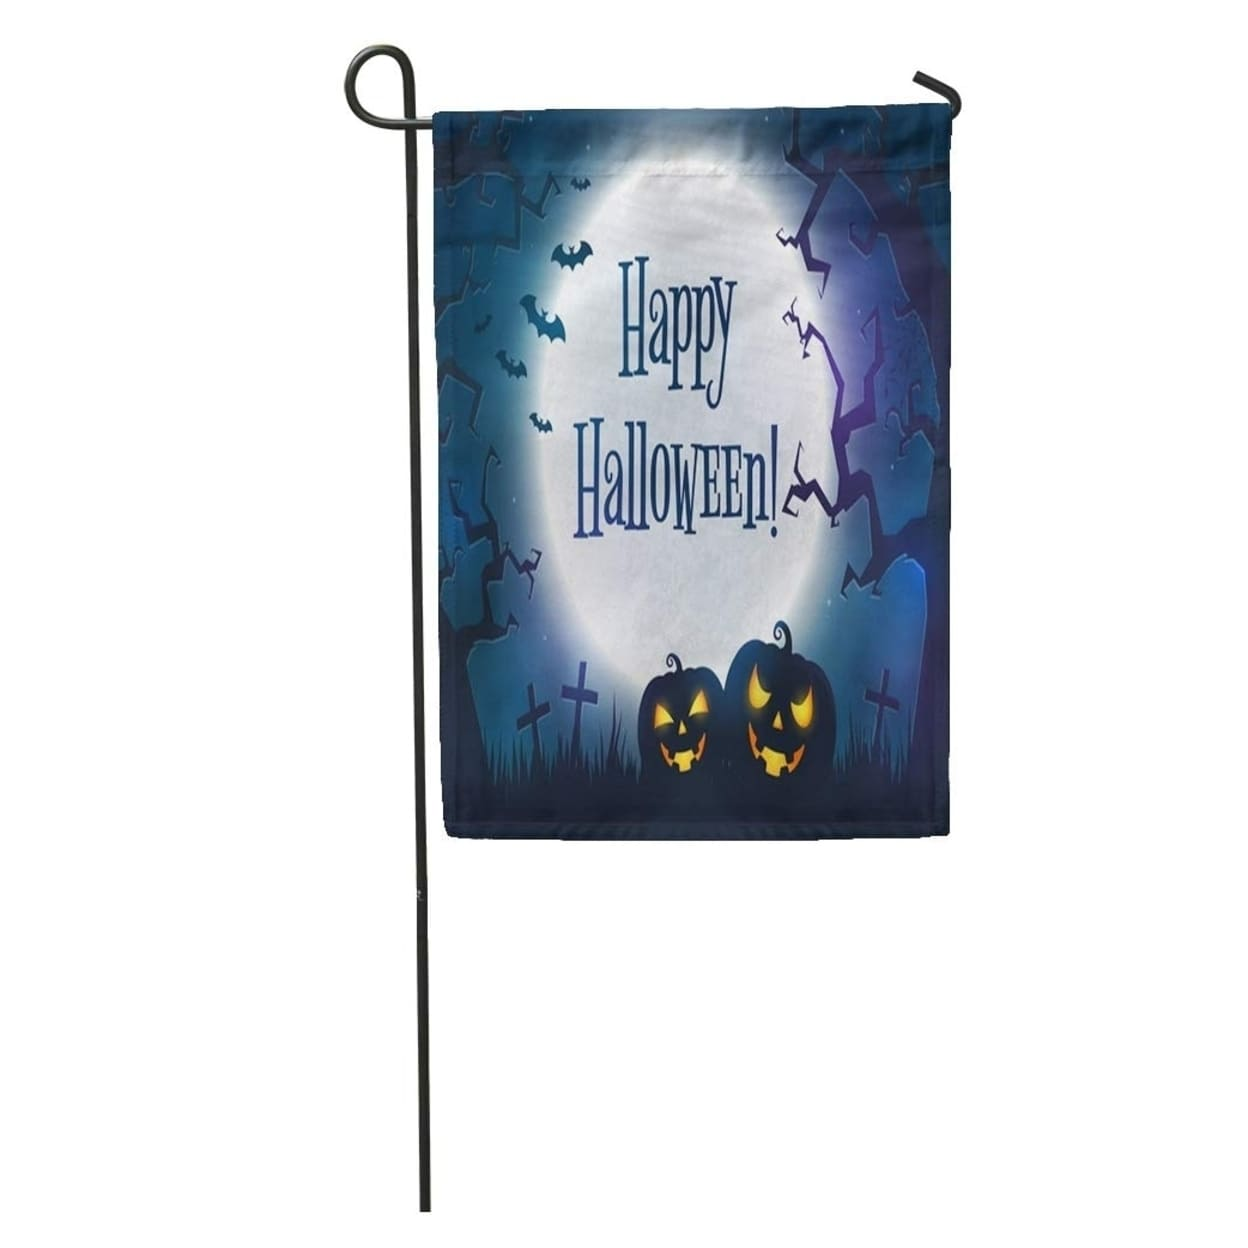 Happy Halloween Spooky Night Full Moon Scary Trees And Evil Garden Flag Decorative Flag House Banner 28x40 Inch On Sale Overstock 31381396